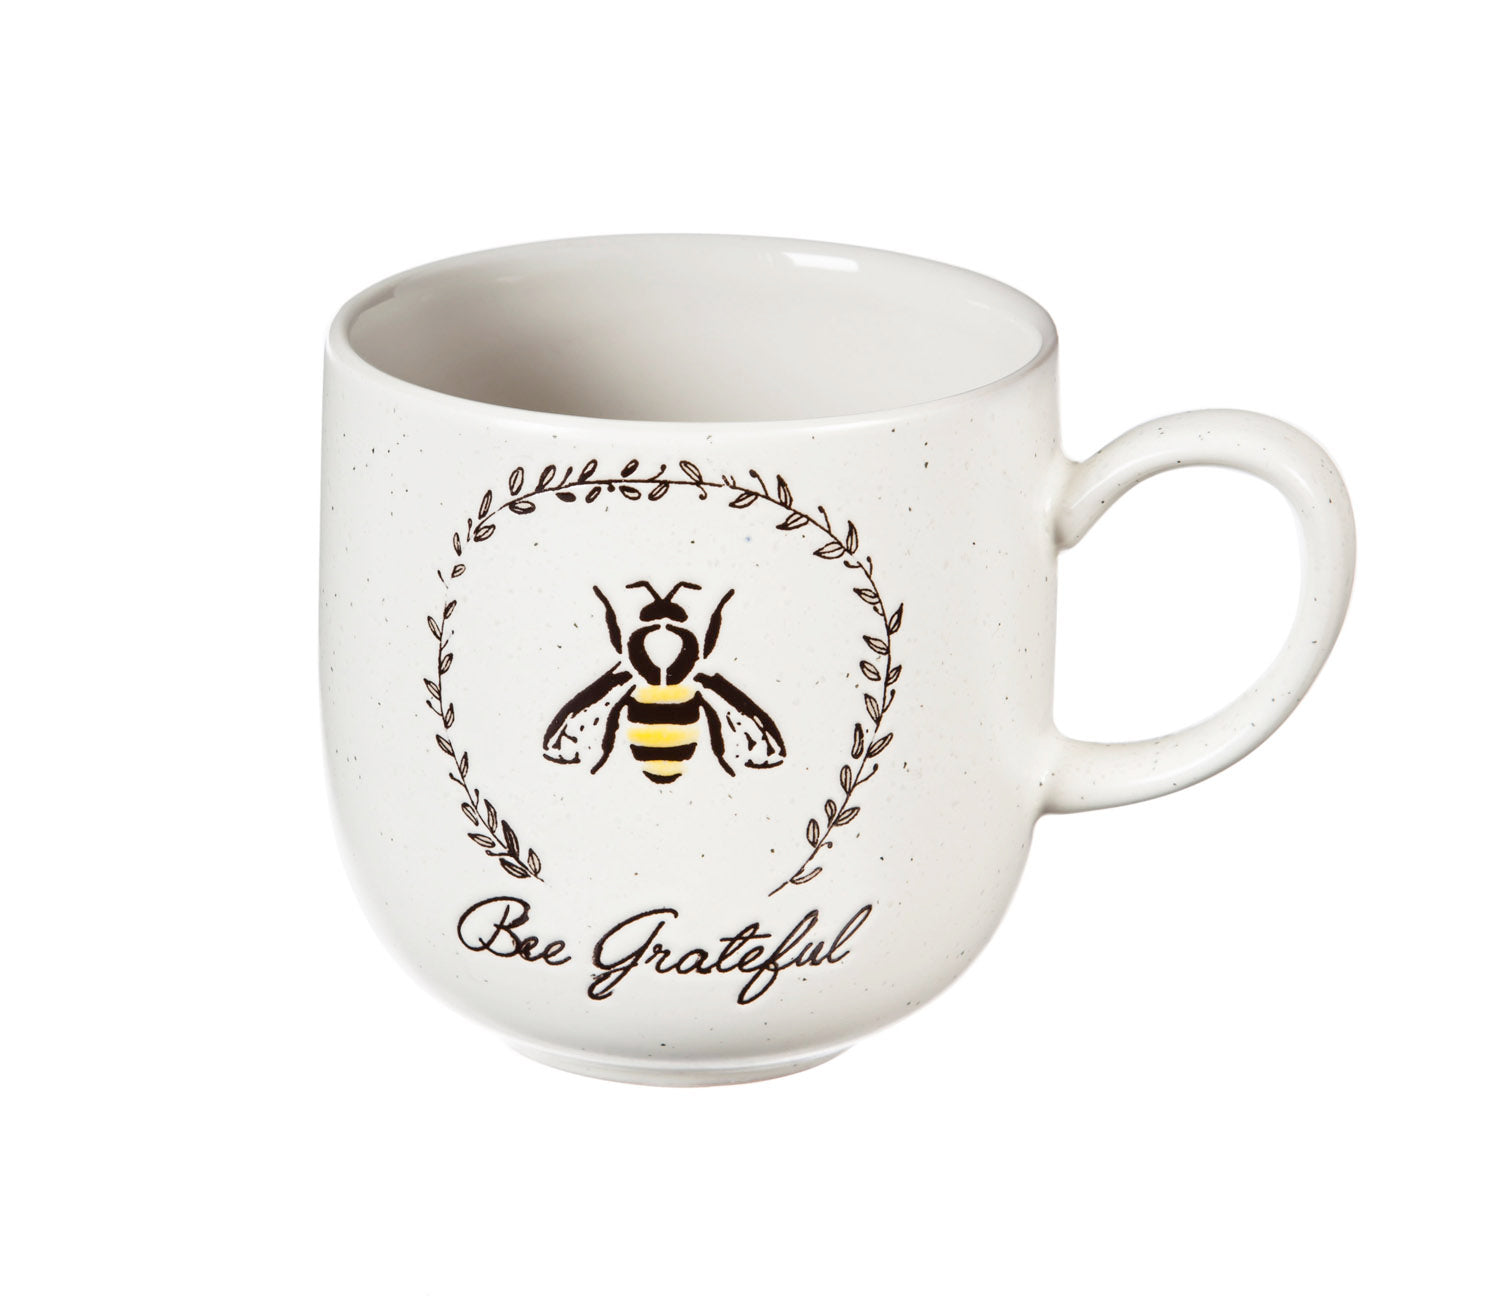 12oz Ceramic Mug-Bee Grateful